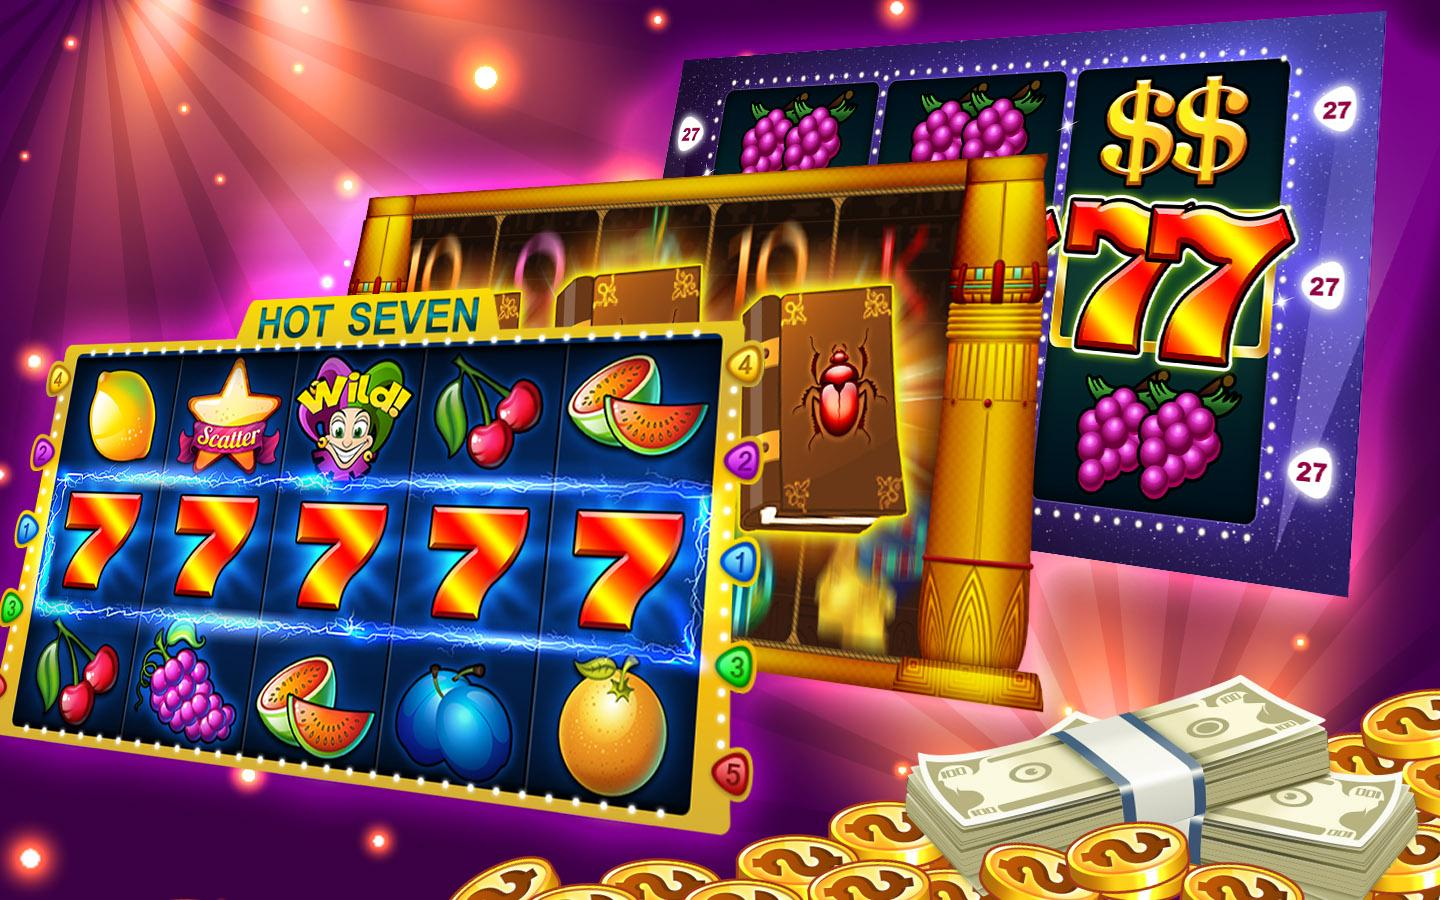 Fresh Fruits Slot Machine - Try Playing Online for Free